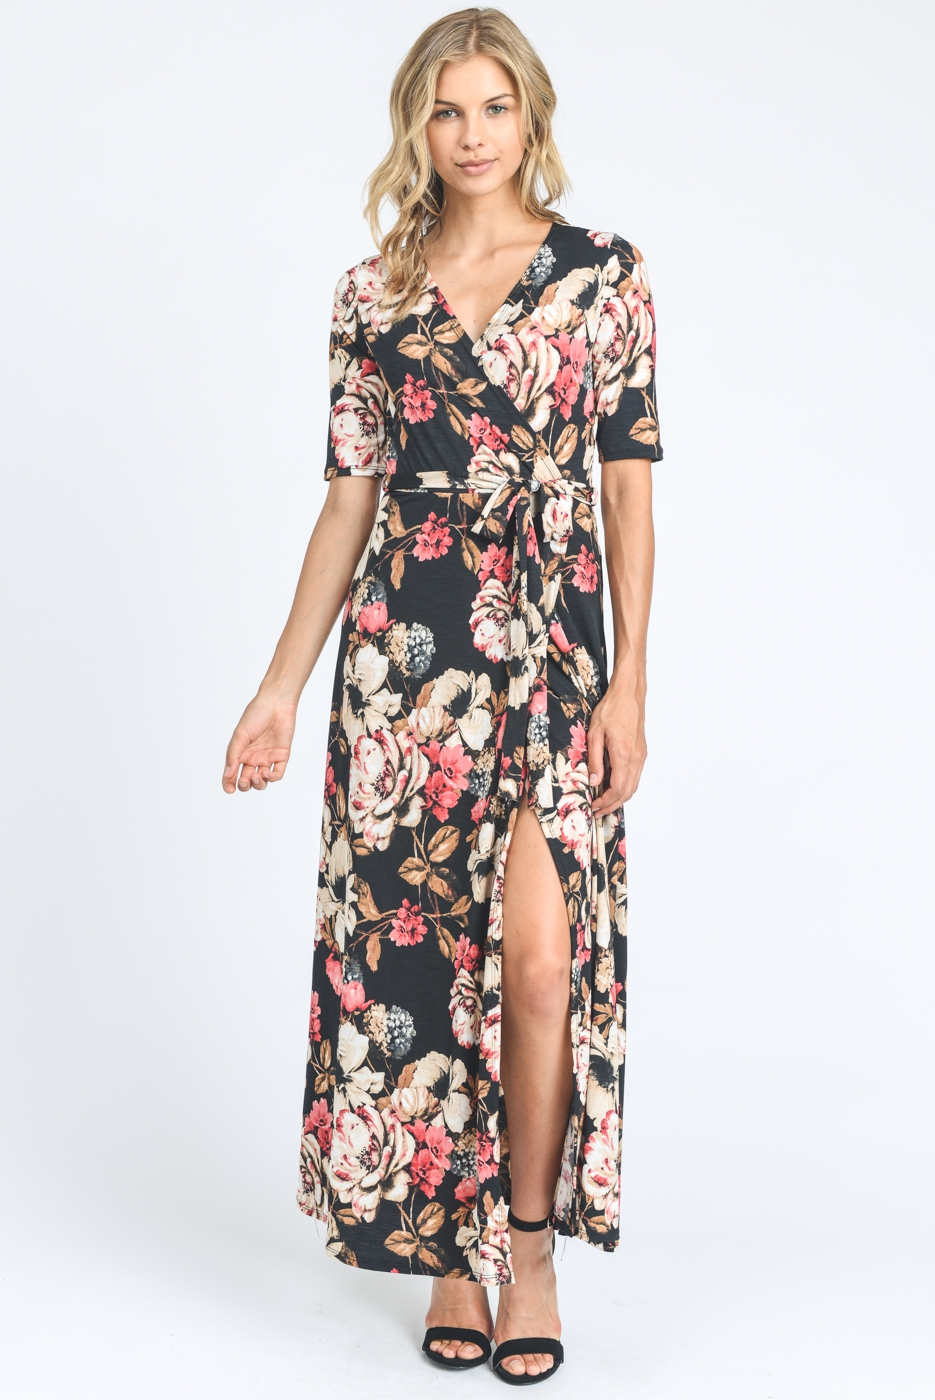 PREMIUM FLORAL FABRIC MAXI DRESS - orangeshine.com